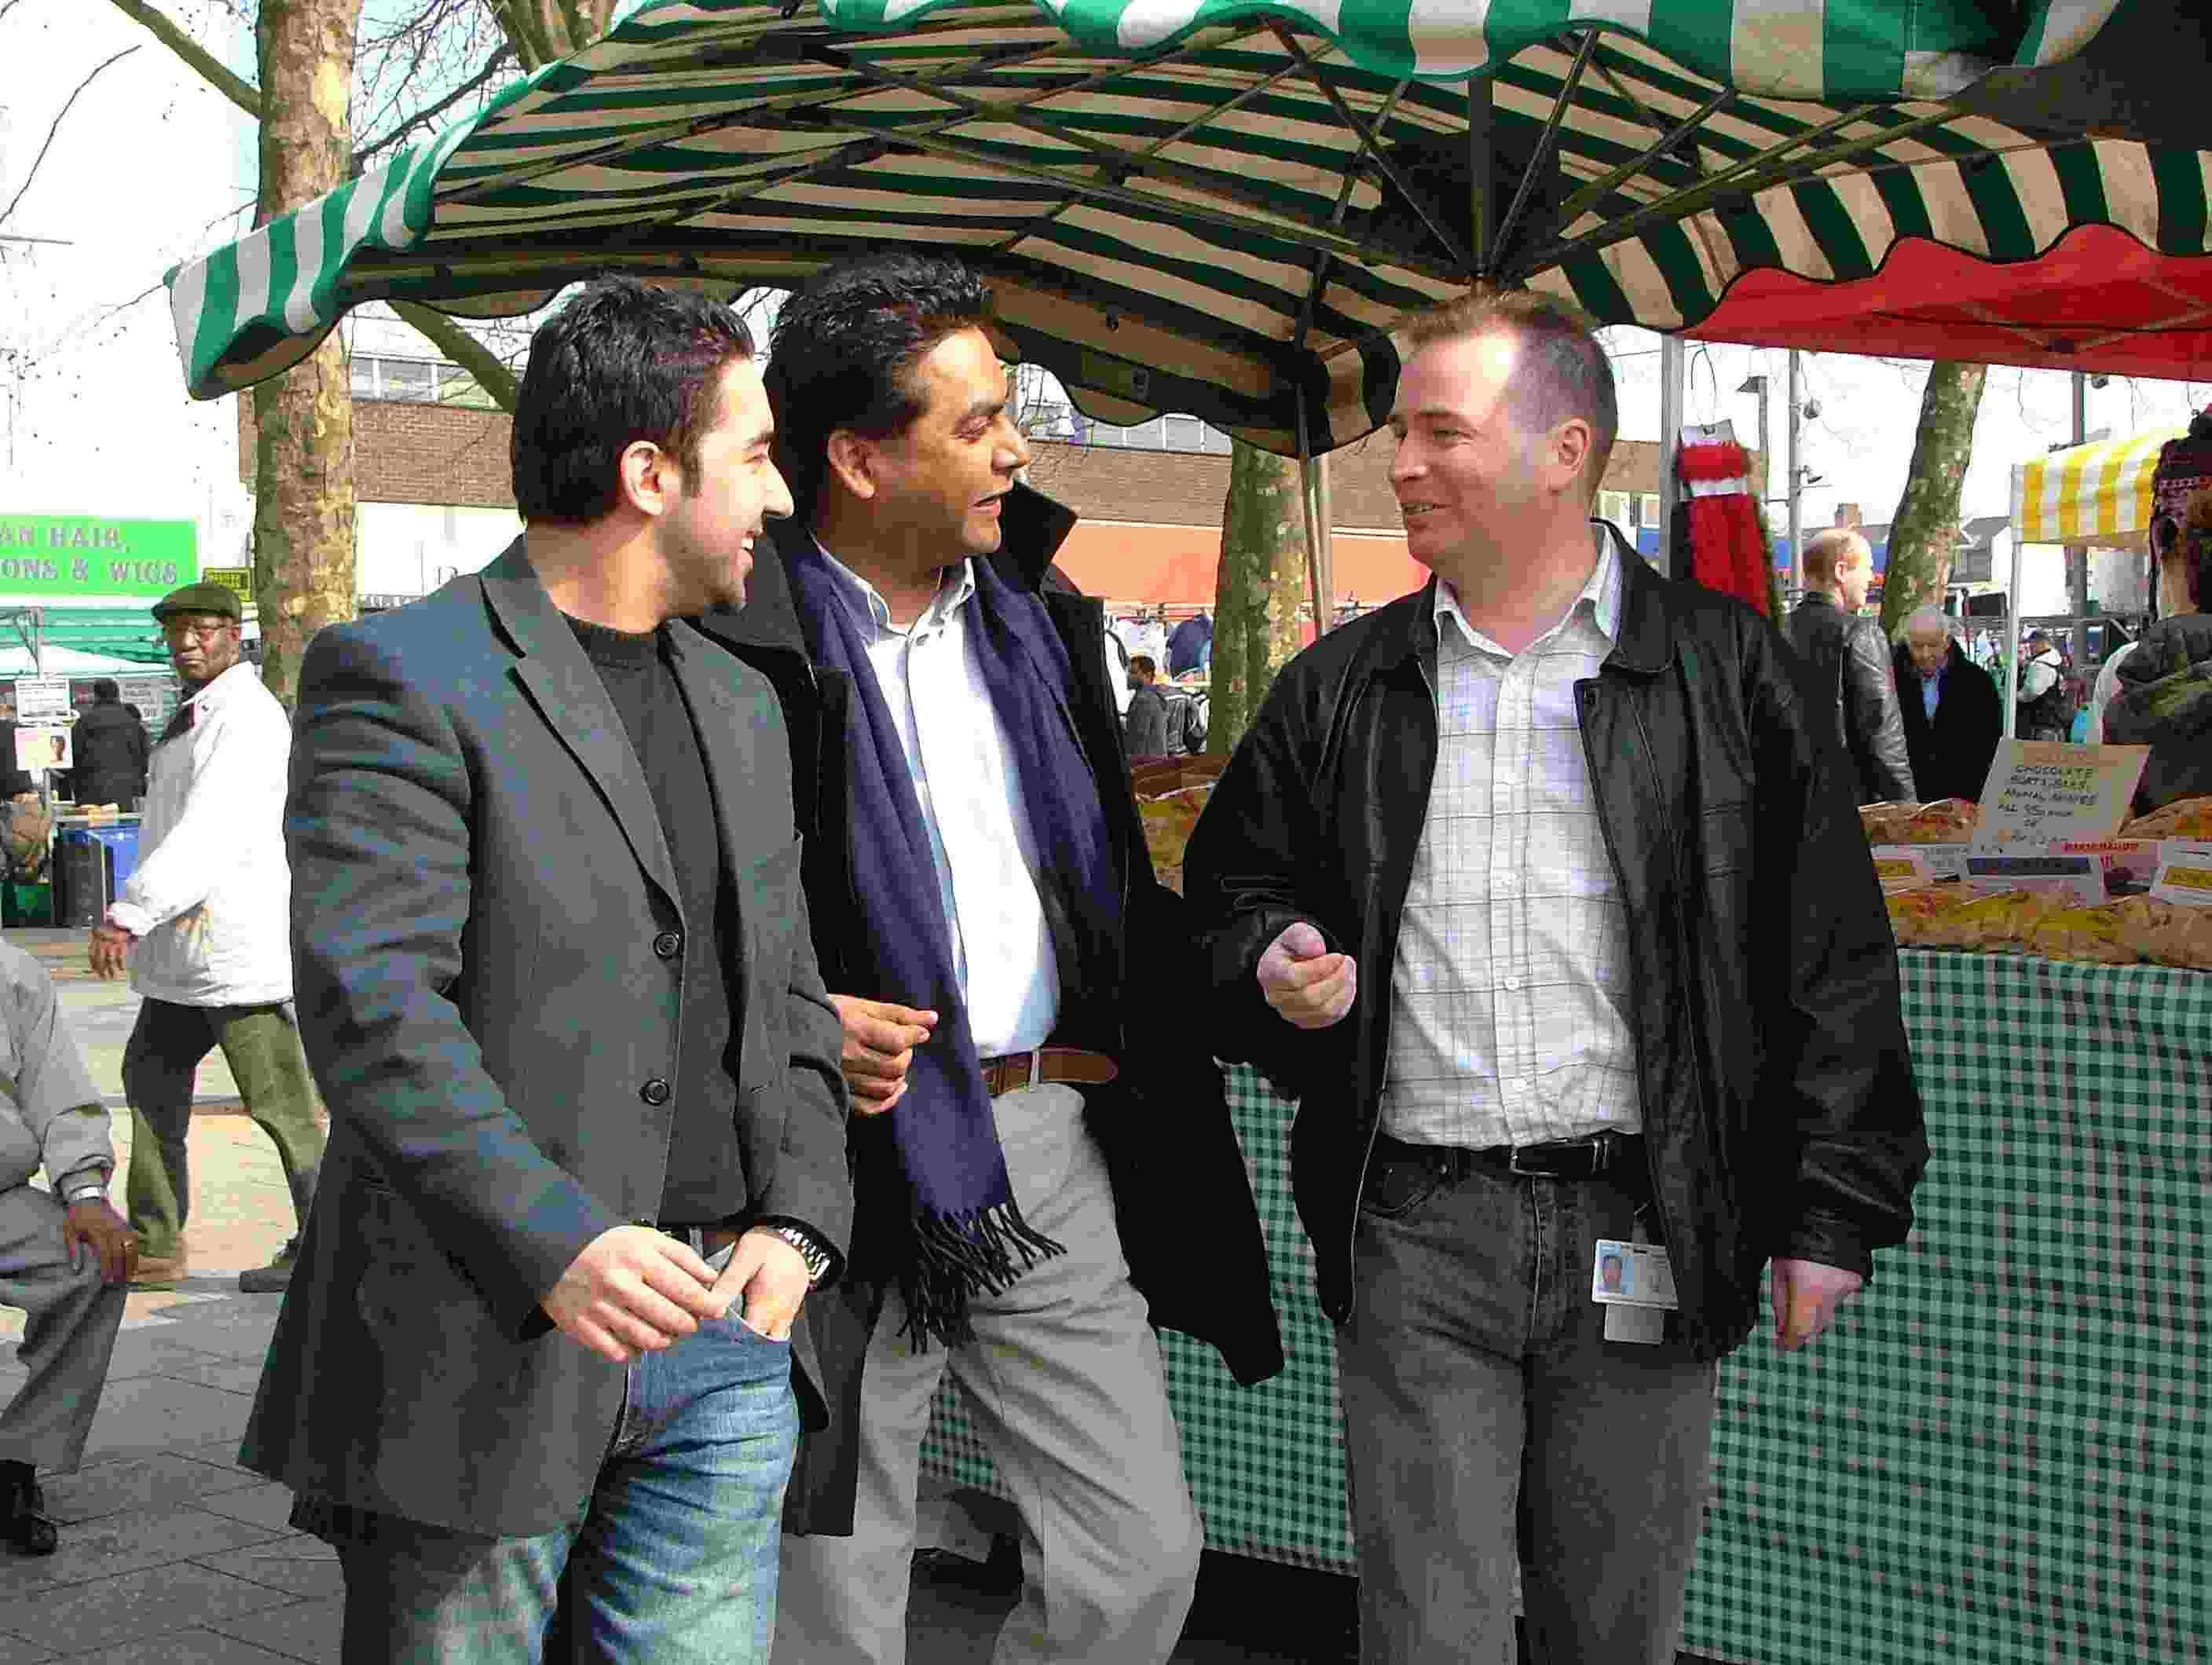 High St councillors Johar Khan (left) and James O'Rourke (right) with Walthamstow parliamentary candidate Farid Ahmed